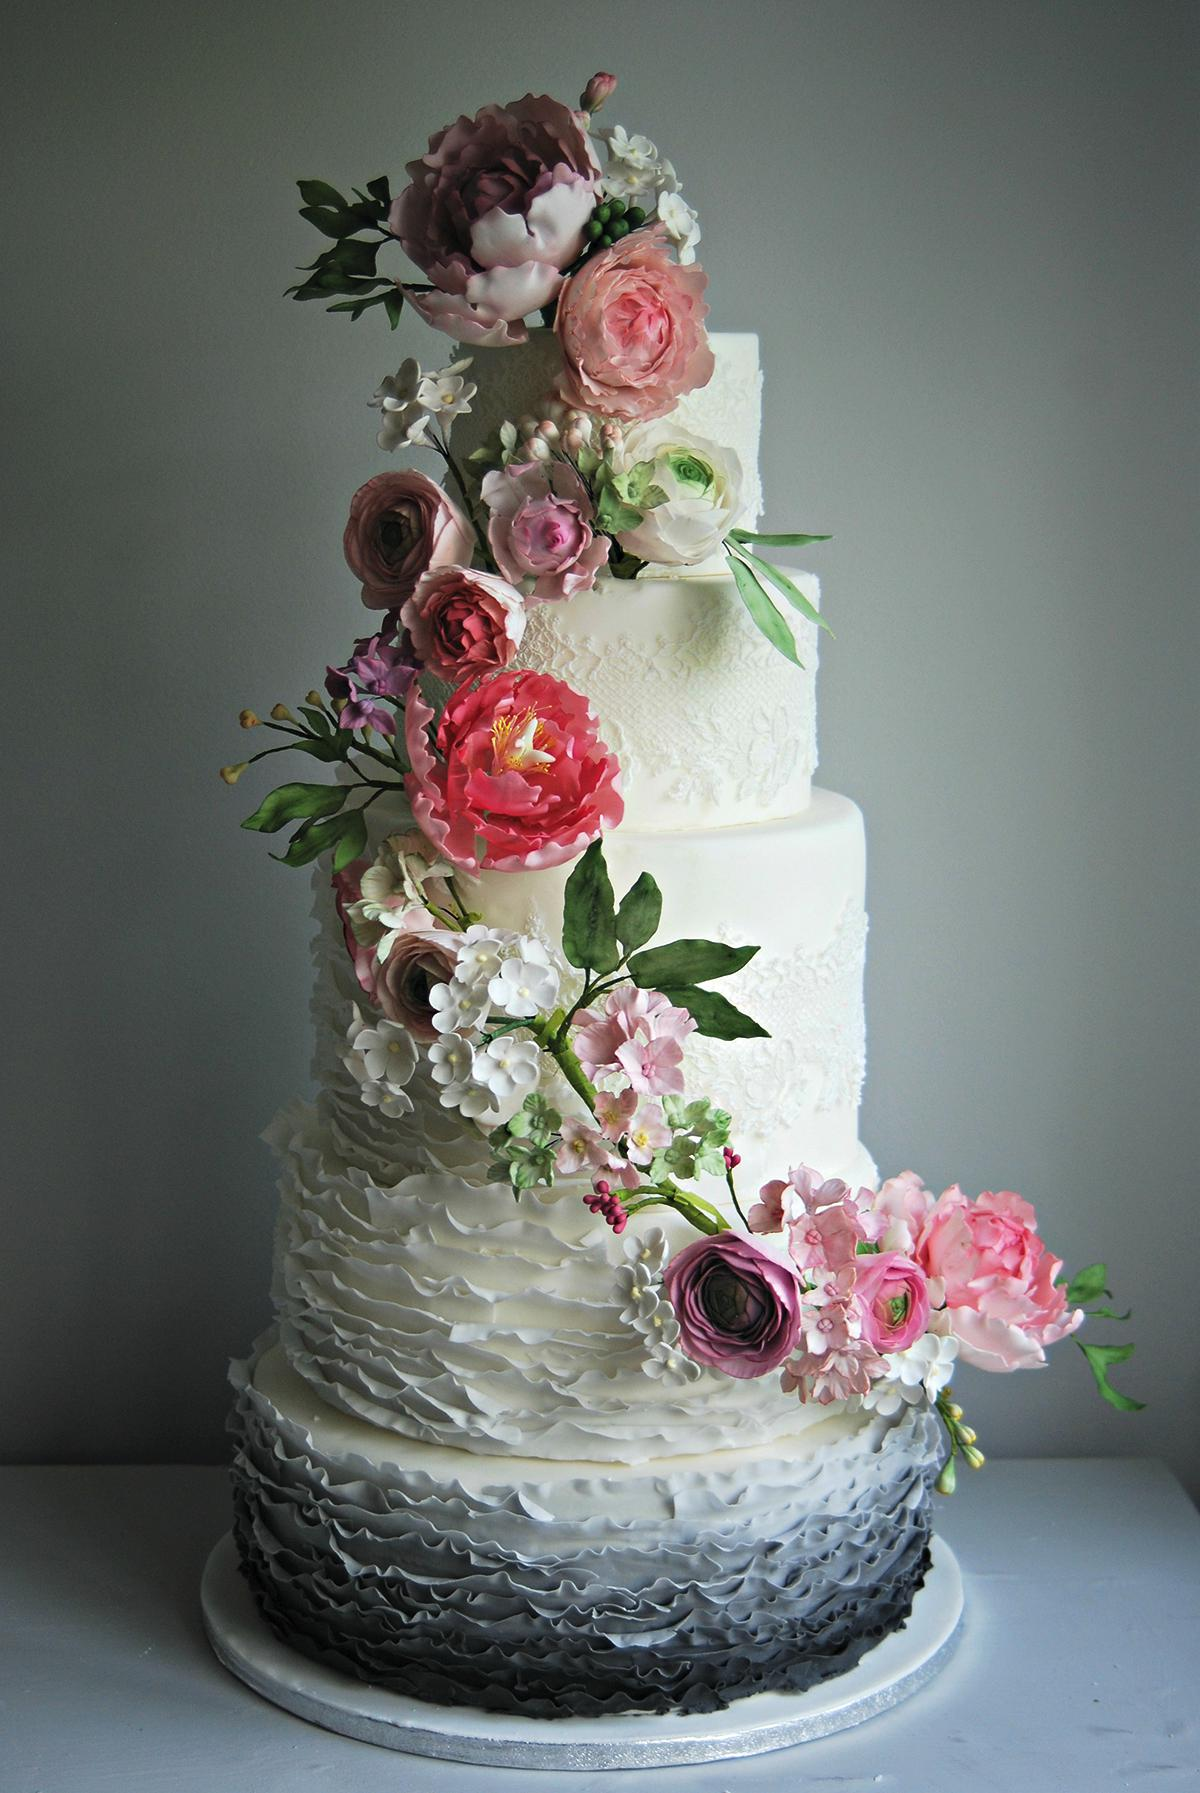 Floral wedding cakes - the-custom-cake-boutique